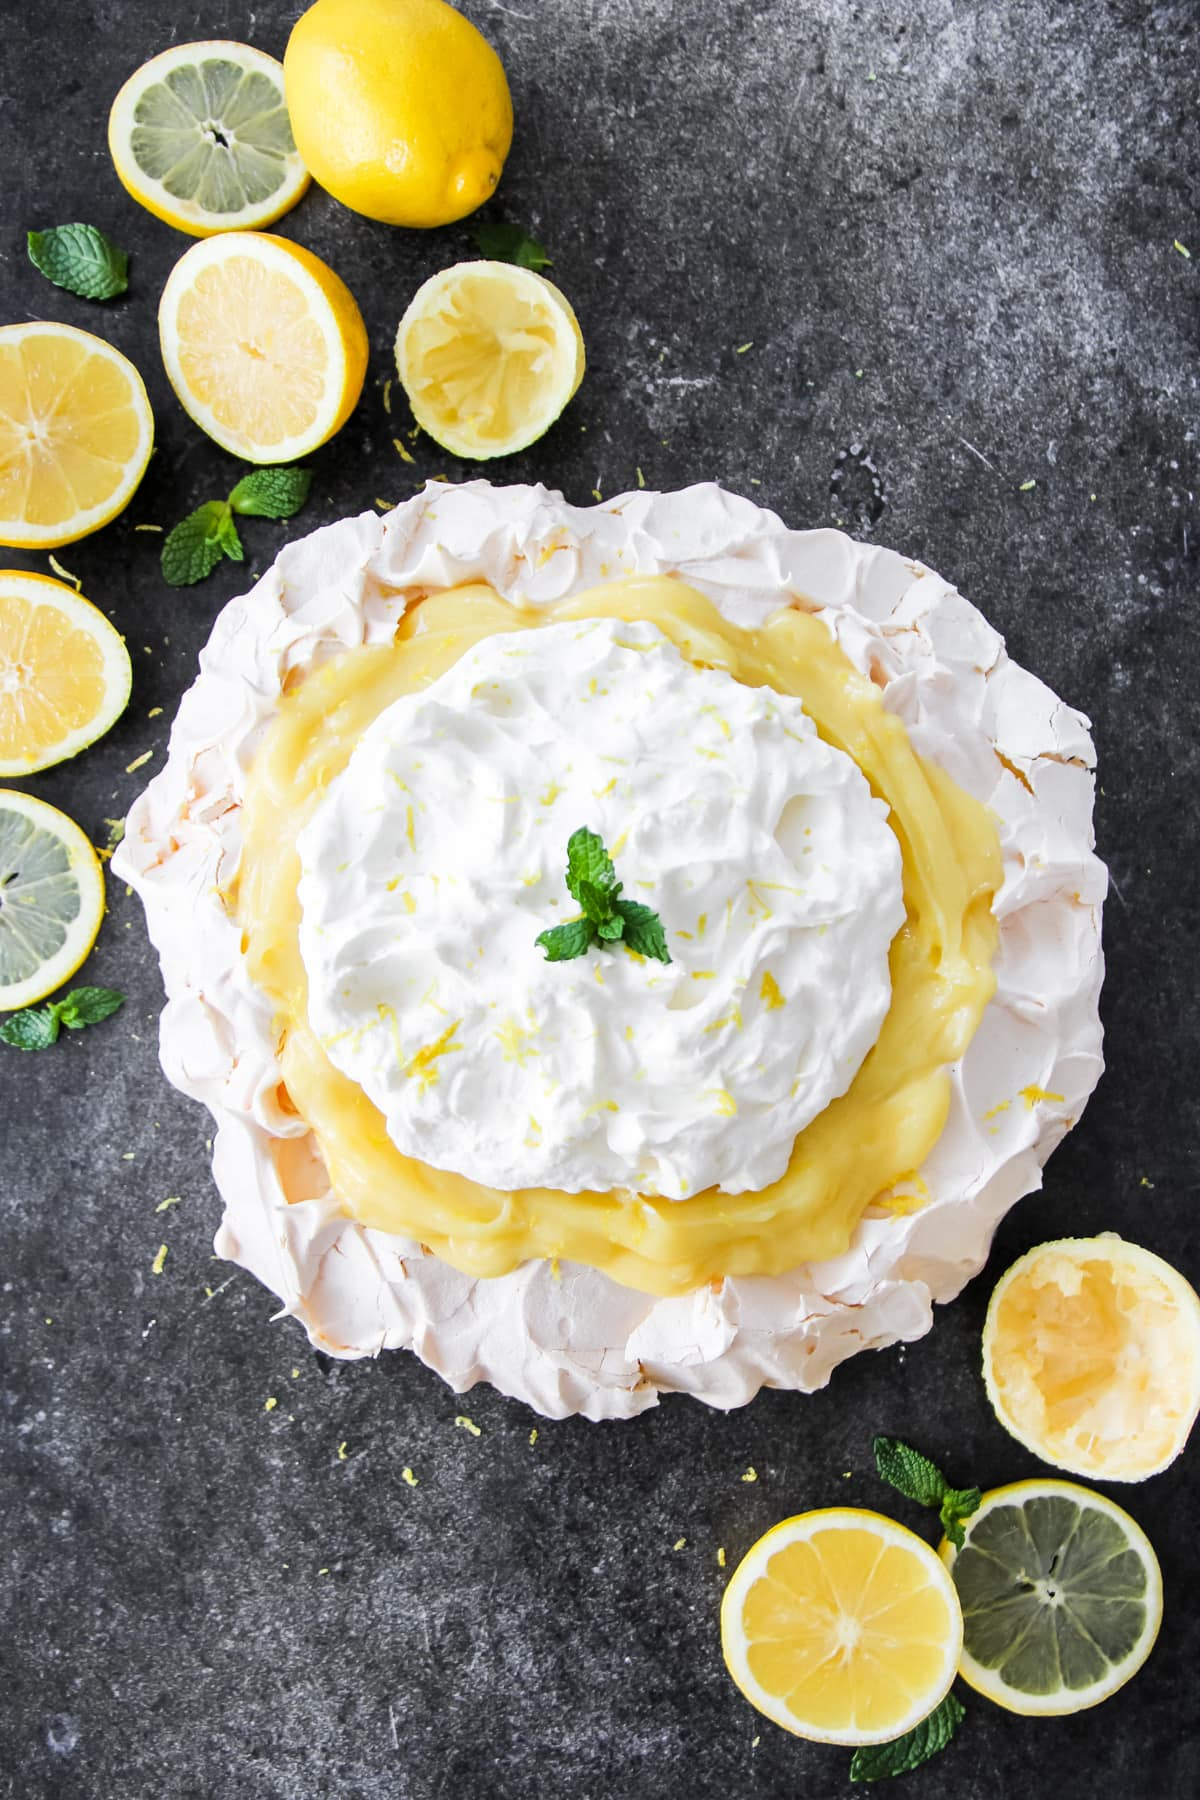 a top down view of a lemon pavlova with lemon curd and whipped cream. in the background are sliced lemons and sprigs of mint